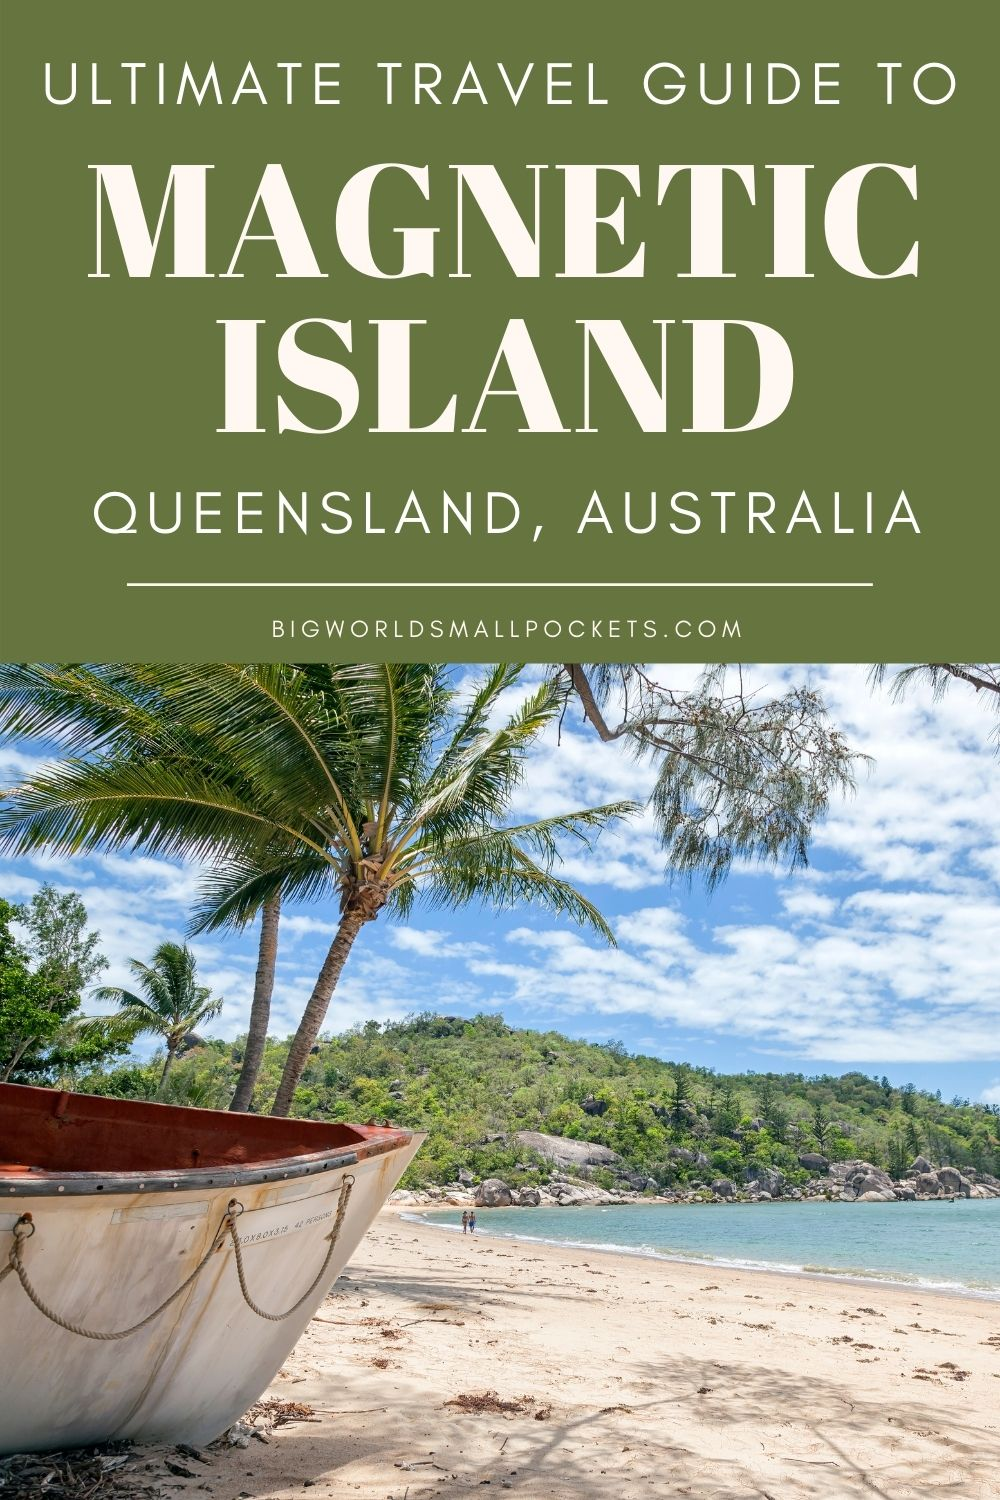 Ultimate Travel Guide to Magnetic Island, Australia